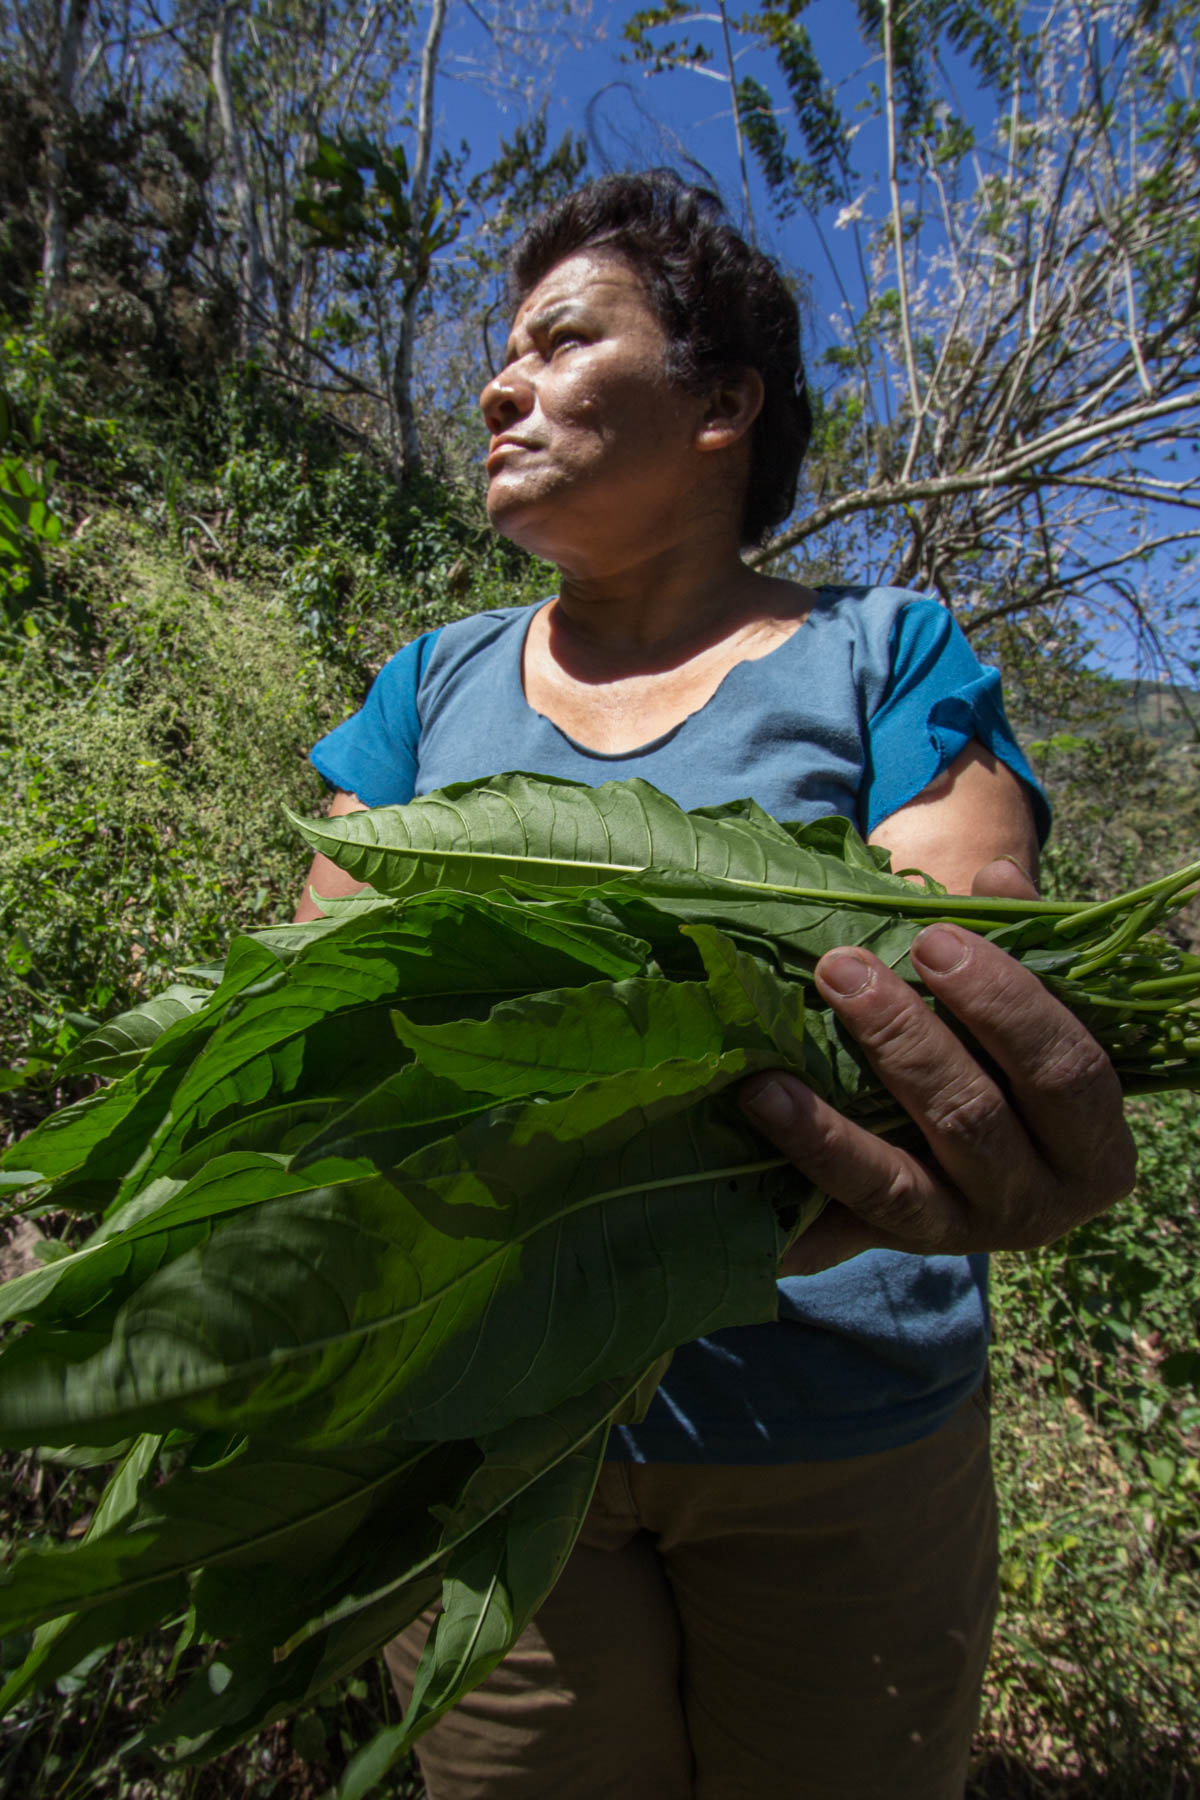 A Costa Rican woman holds wild kioro leaves for dinner